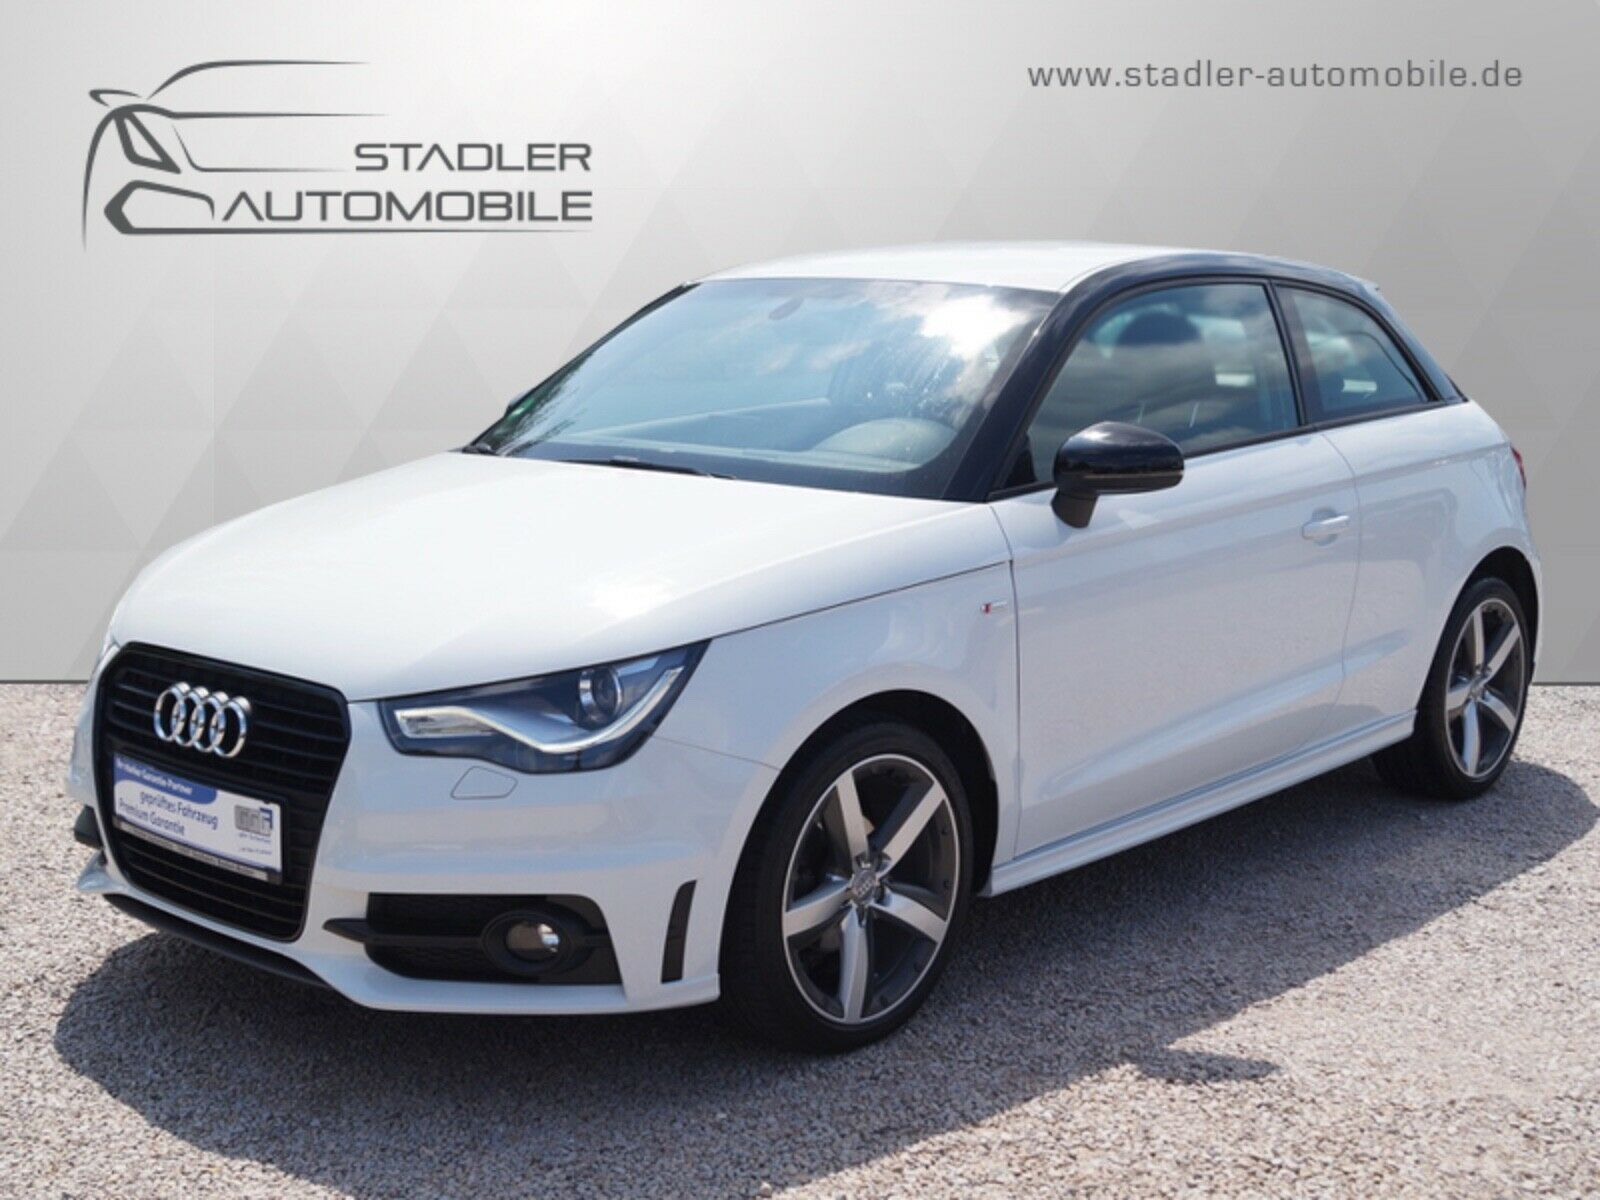 AUDI A1 Attraction /ADMIRED 1,2  S-LINE*NAVI*XENON*..